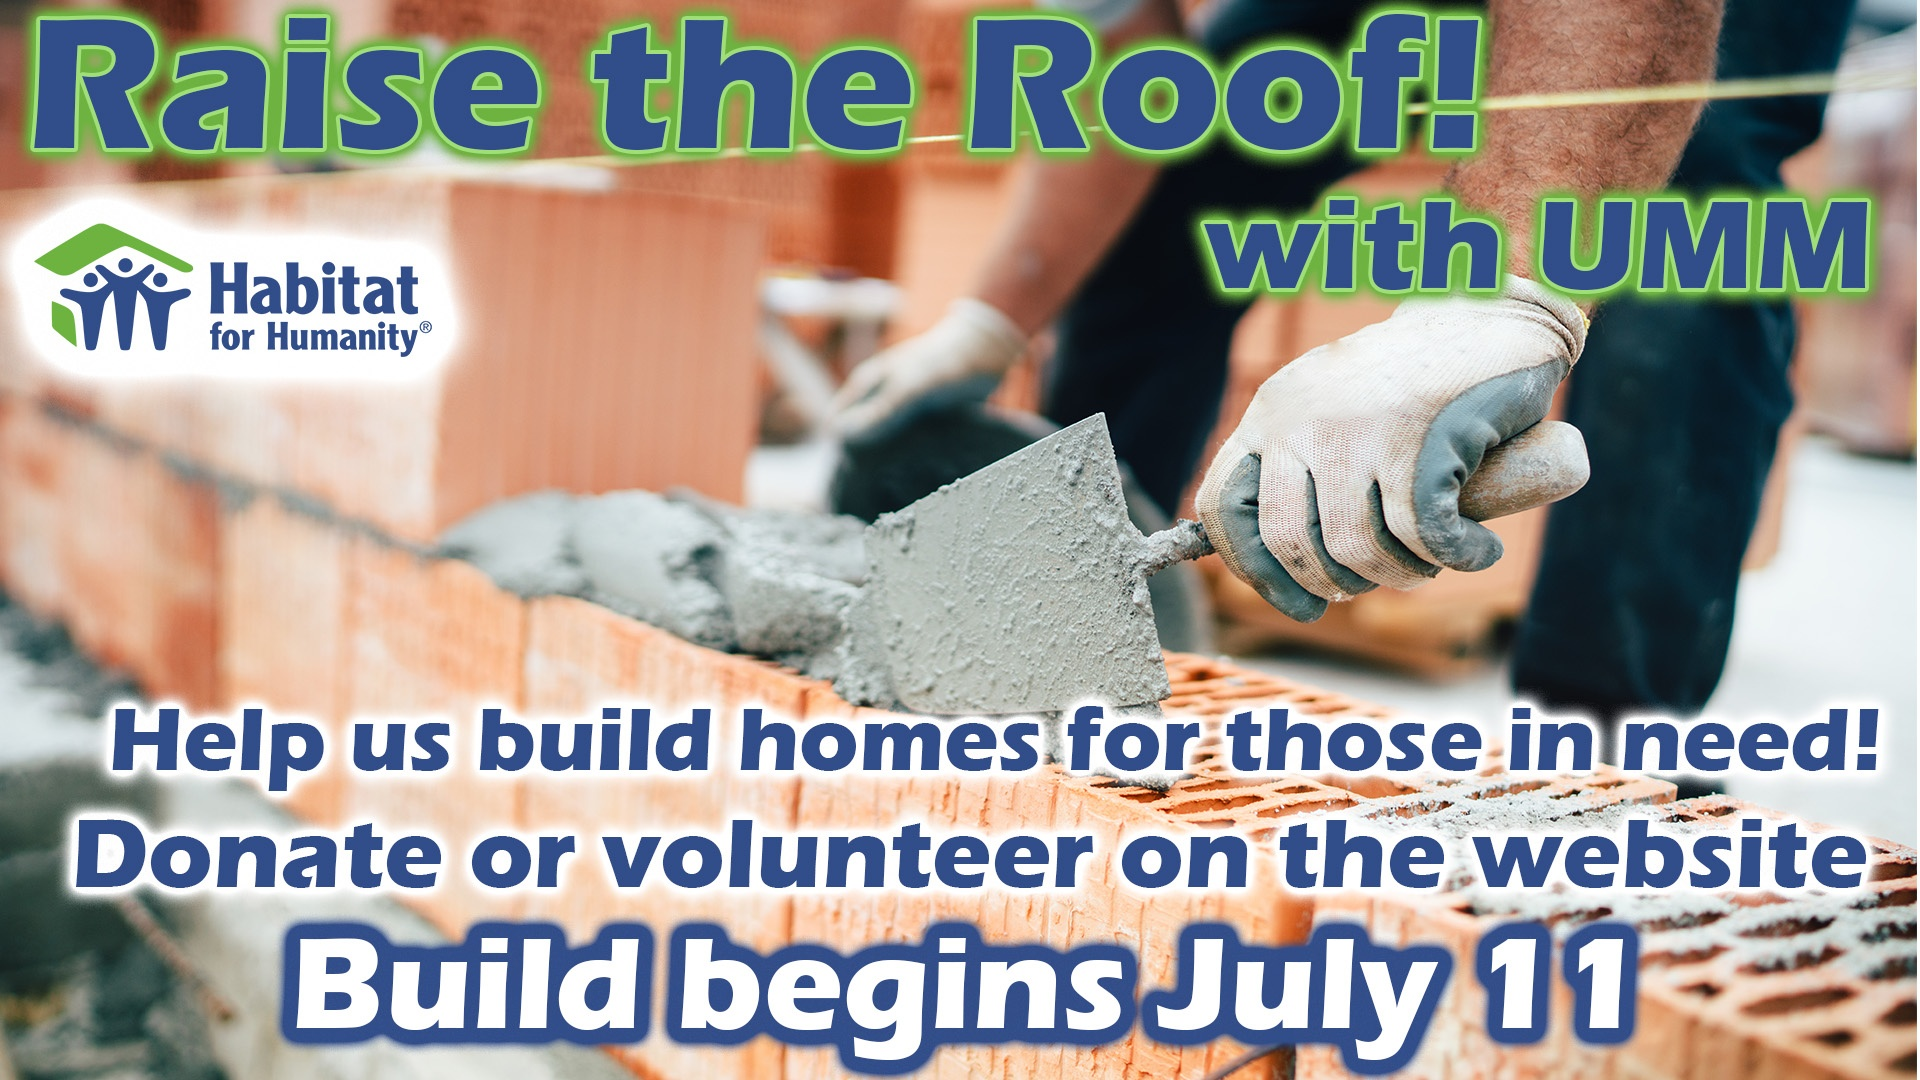 raise the roof with umm help us build homes for those in need! donate or volunteer on the website build begins july 11